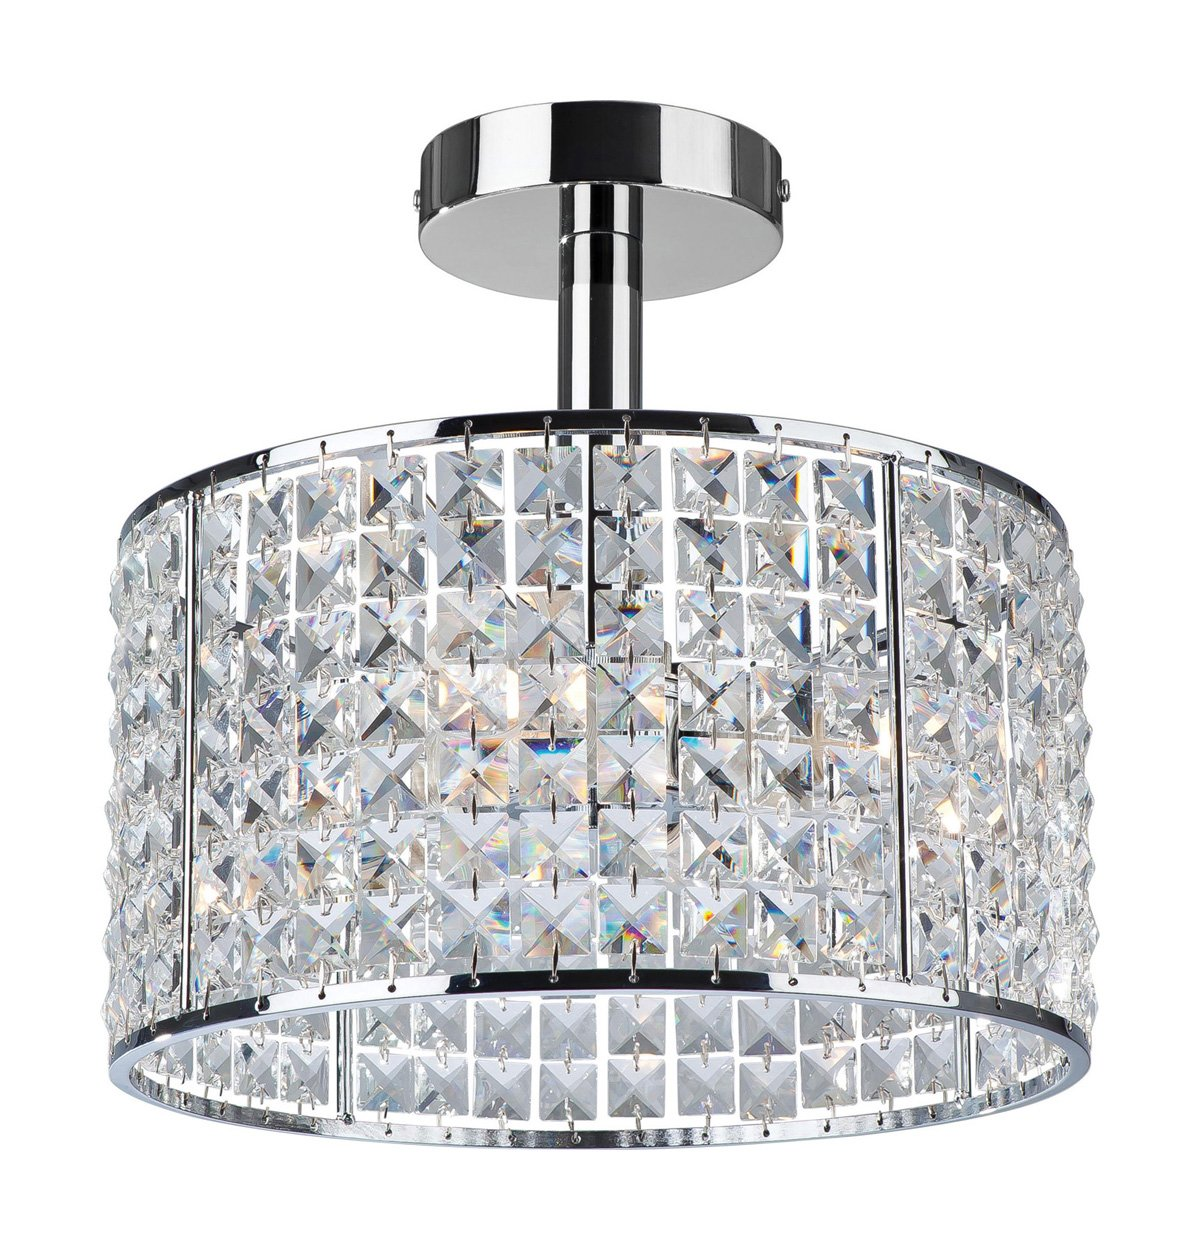 Firstlight Pearl G9 IP44 4 x 240 V 40 Watt Chrome Semi Flush Fitting with Crystal       Customer reviews and more news